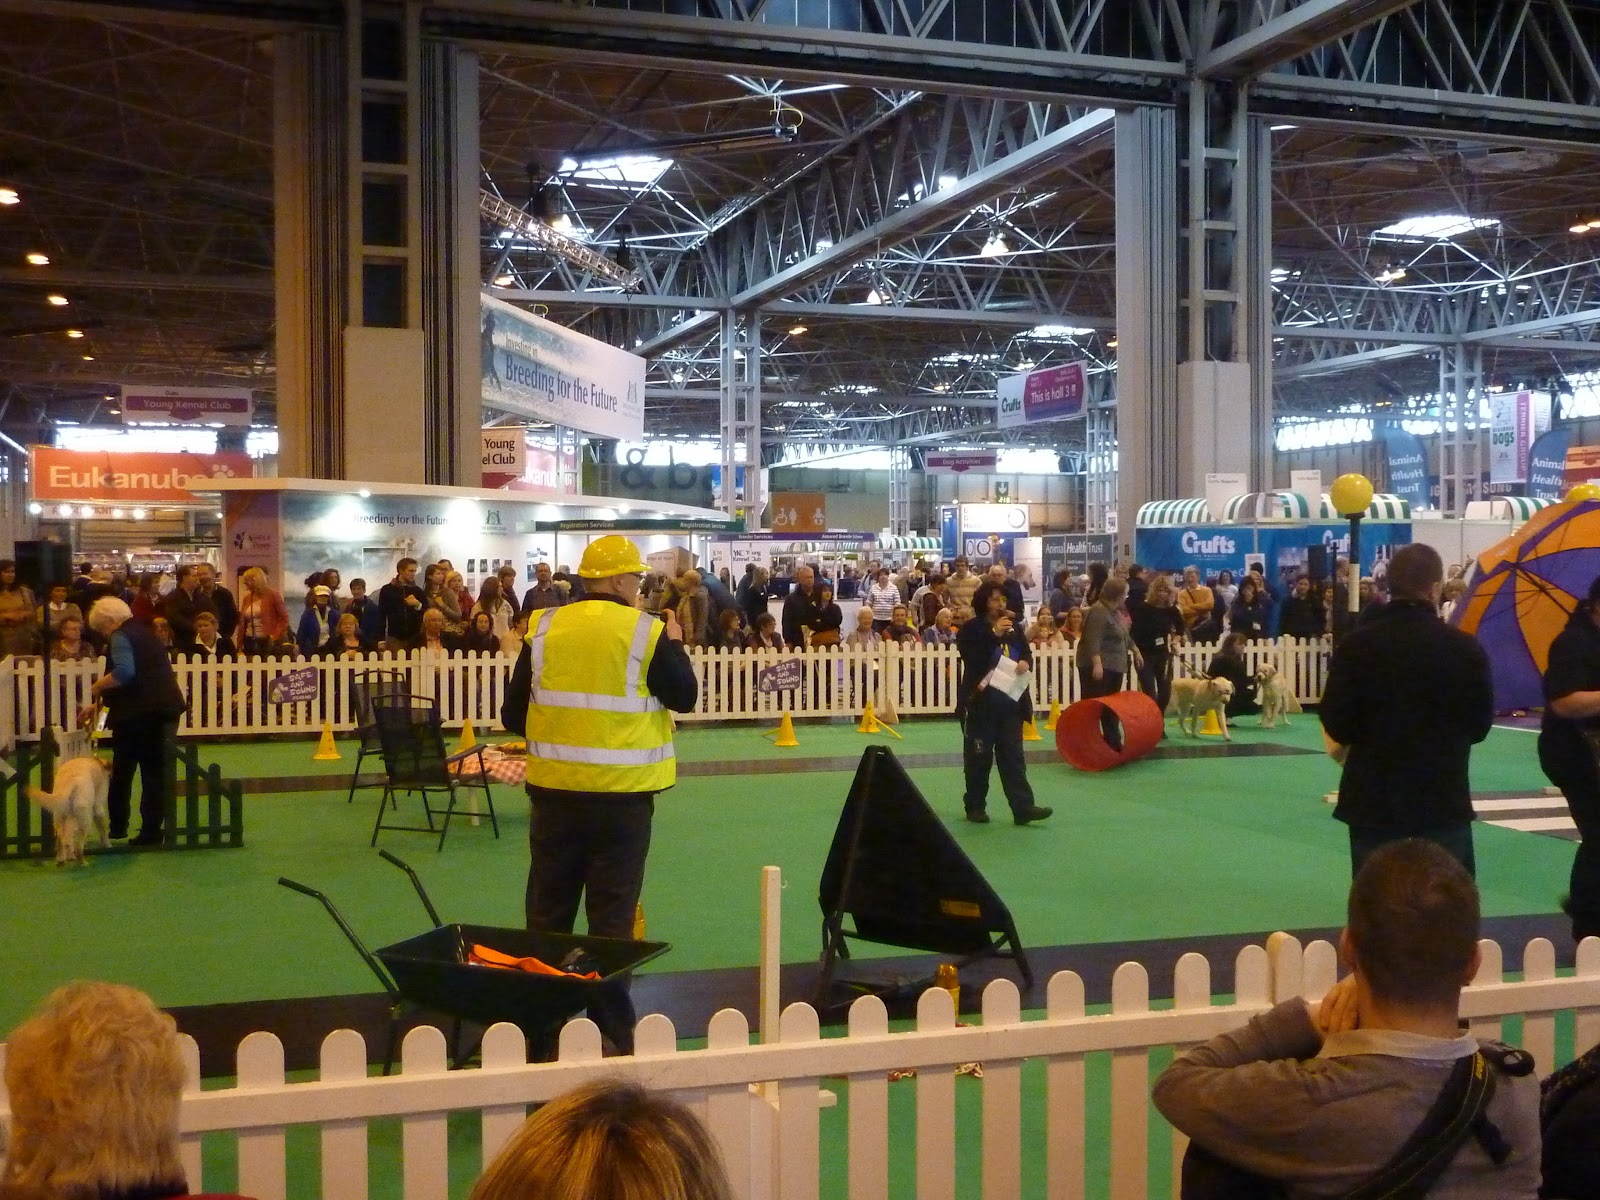 Trade Stands Crufts 2015 : Crufts a great family day out dancing in my wellies